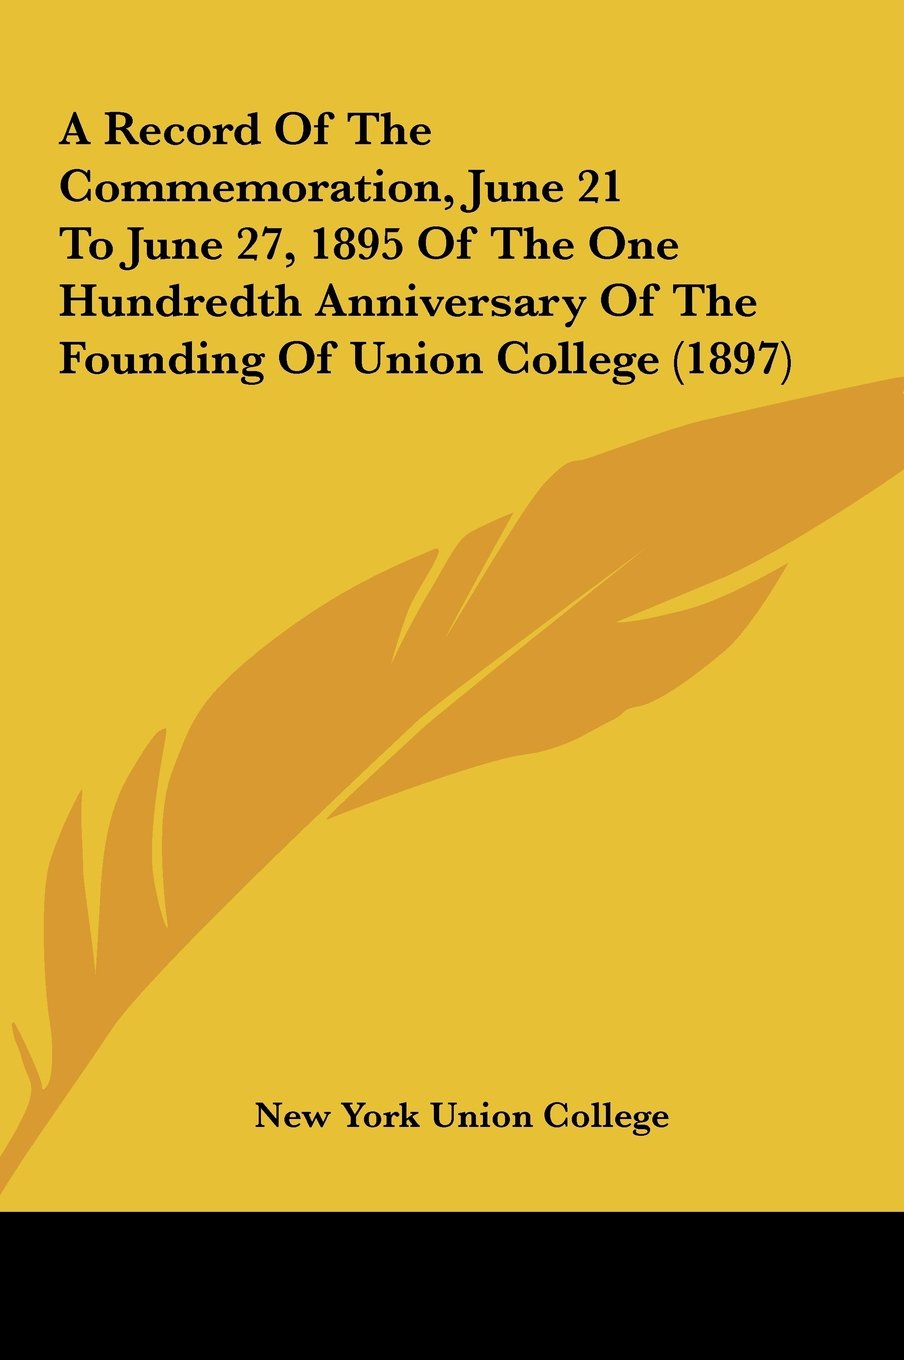 Read Online A Record Of The Commemoration, June 21 To June 27, 1895 Of The One Hundredth Anniversary Of The Founding Of Union College (1897) PDF